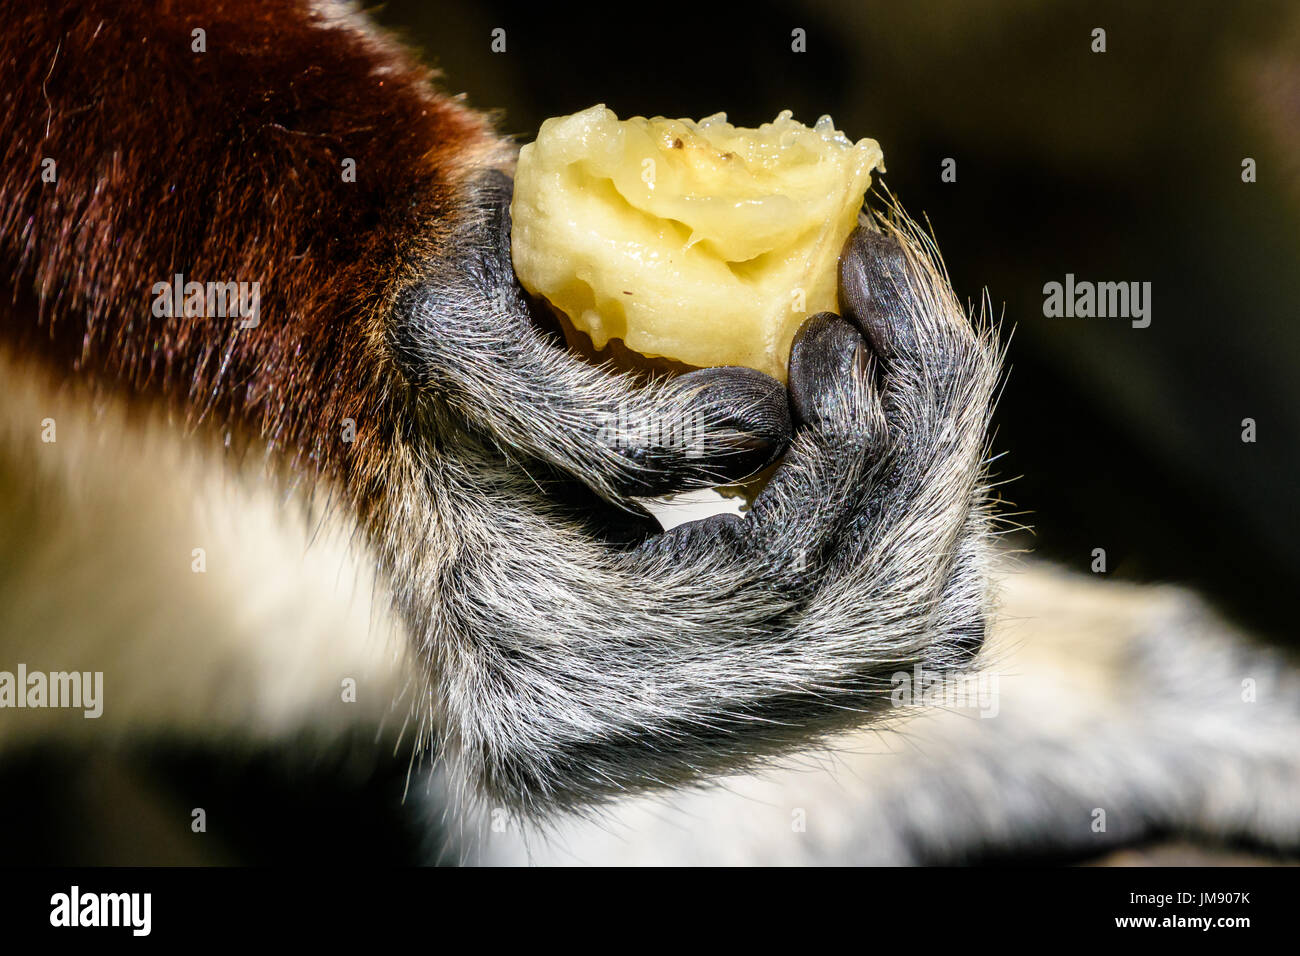 Close up Sifaka lemur mano con banana Immagini Stock